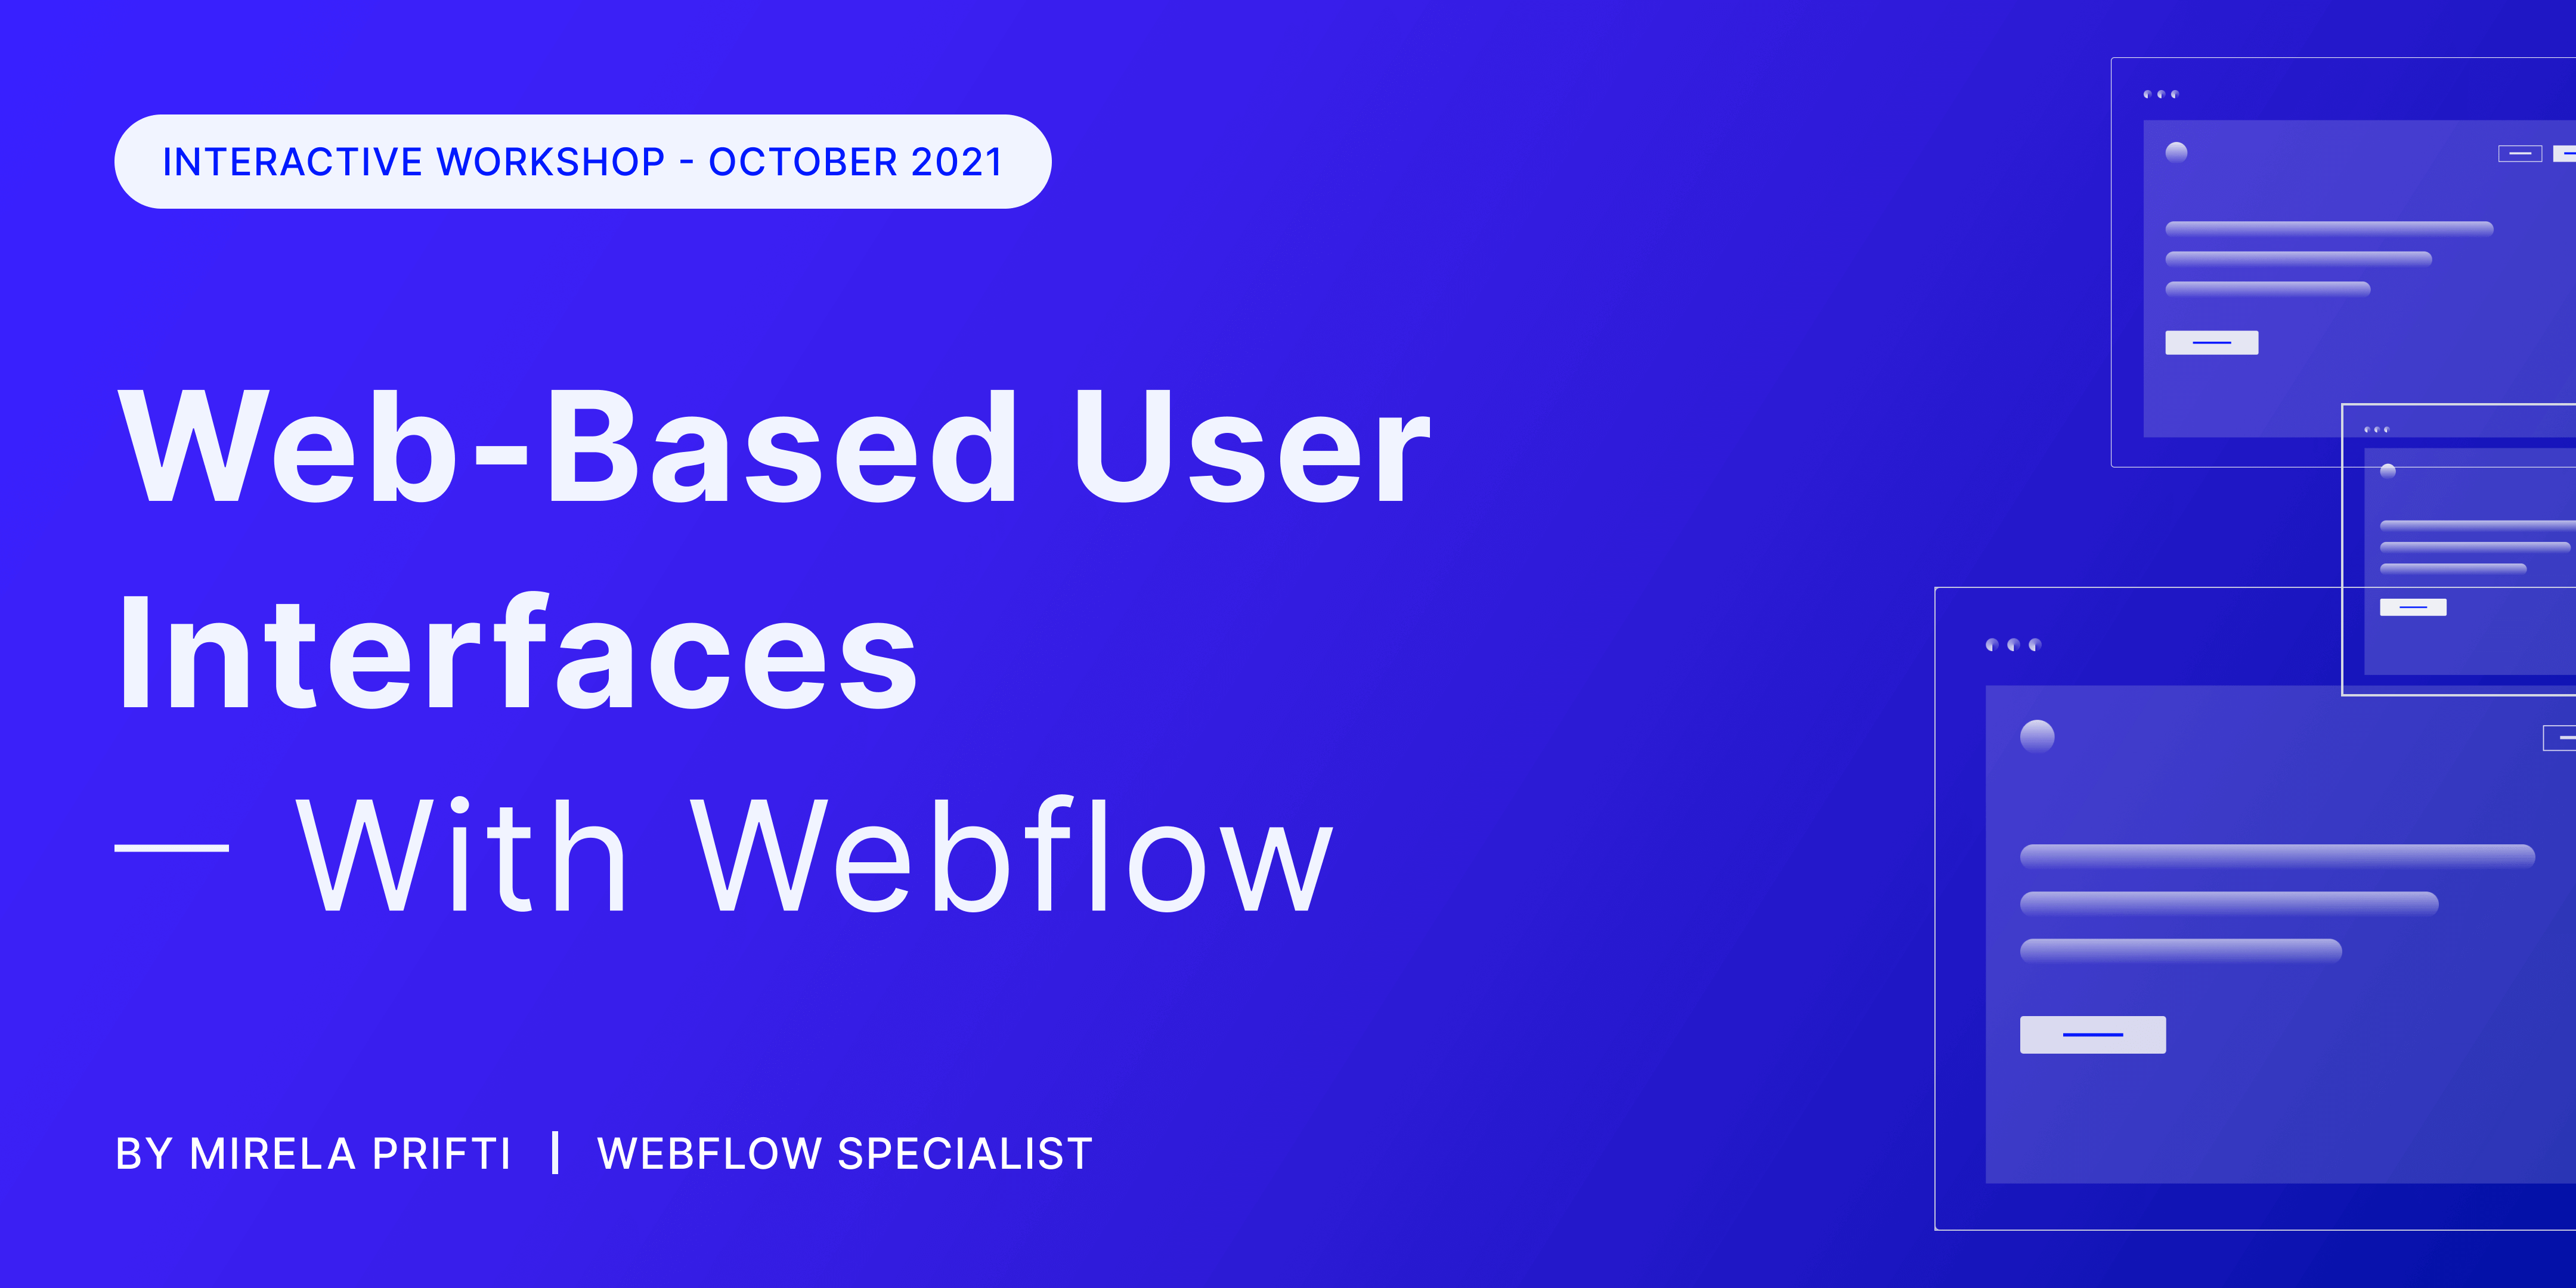 Web-Based User Interfaces With Webflow - Workshop